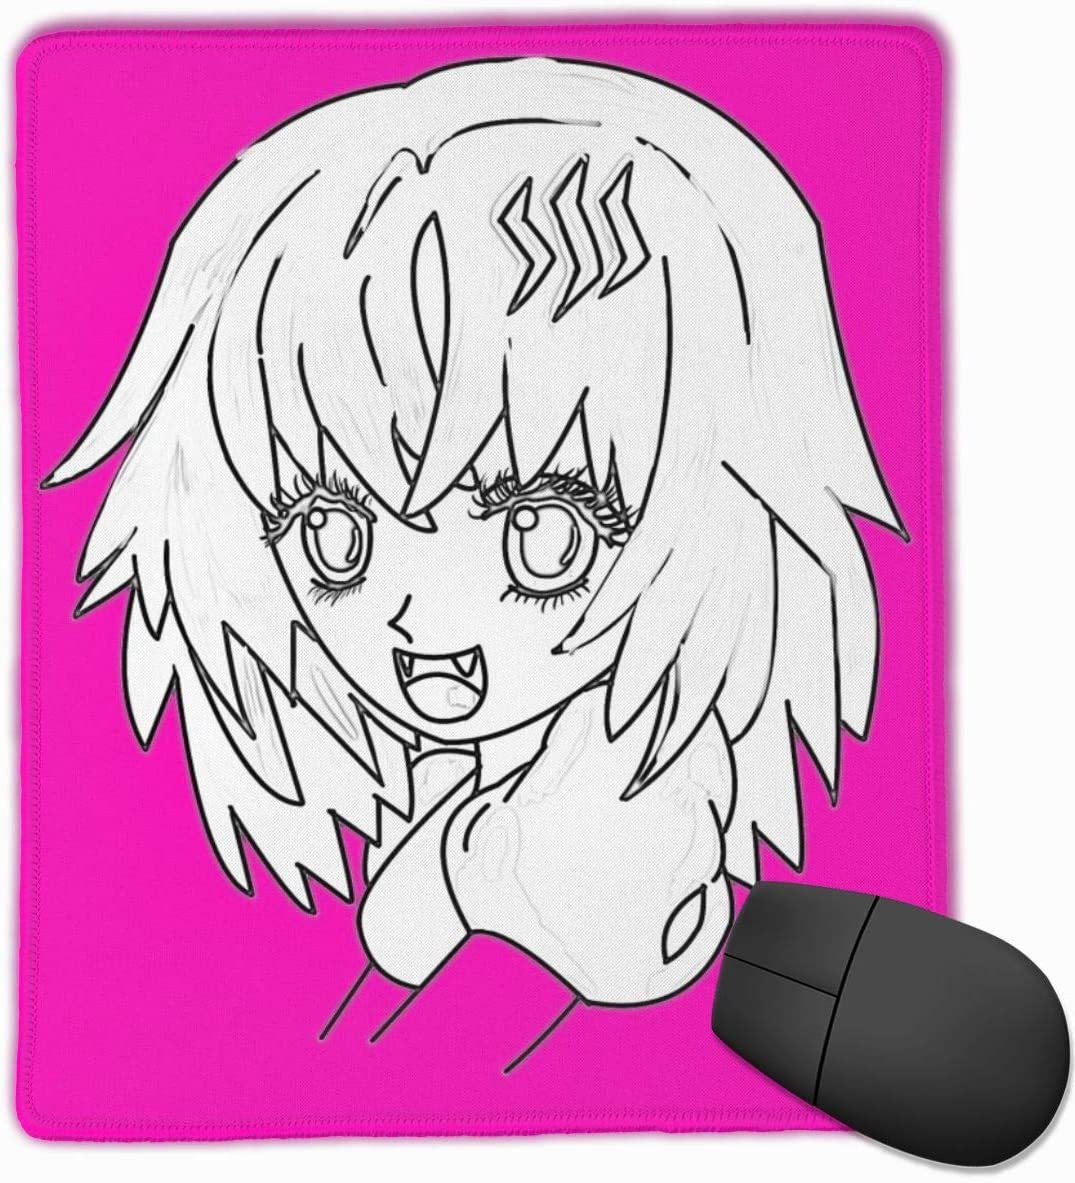 Malven Tokyo Ghoul Cute Steem Girl Drawing Mouse Pad Non-Slip Rubber Base for Office Gaming Computer with Stitched Edge 10x12 in